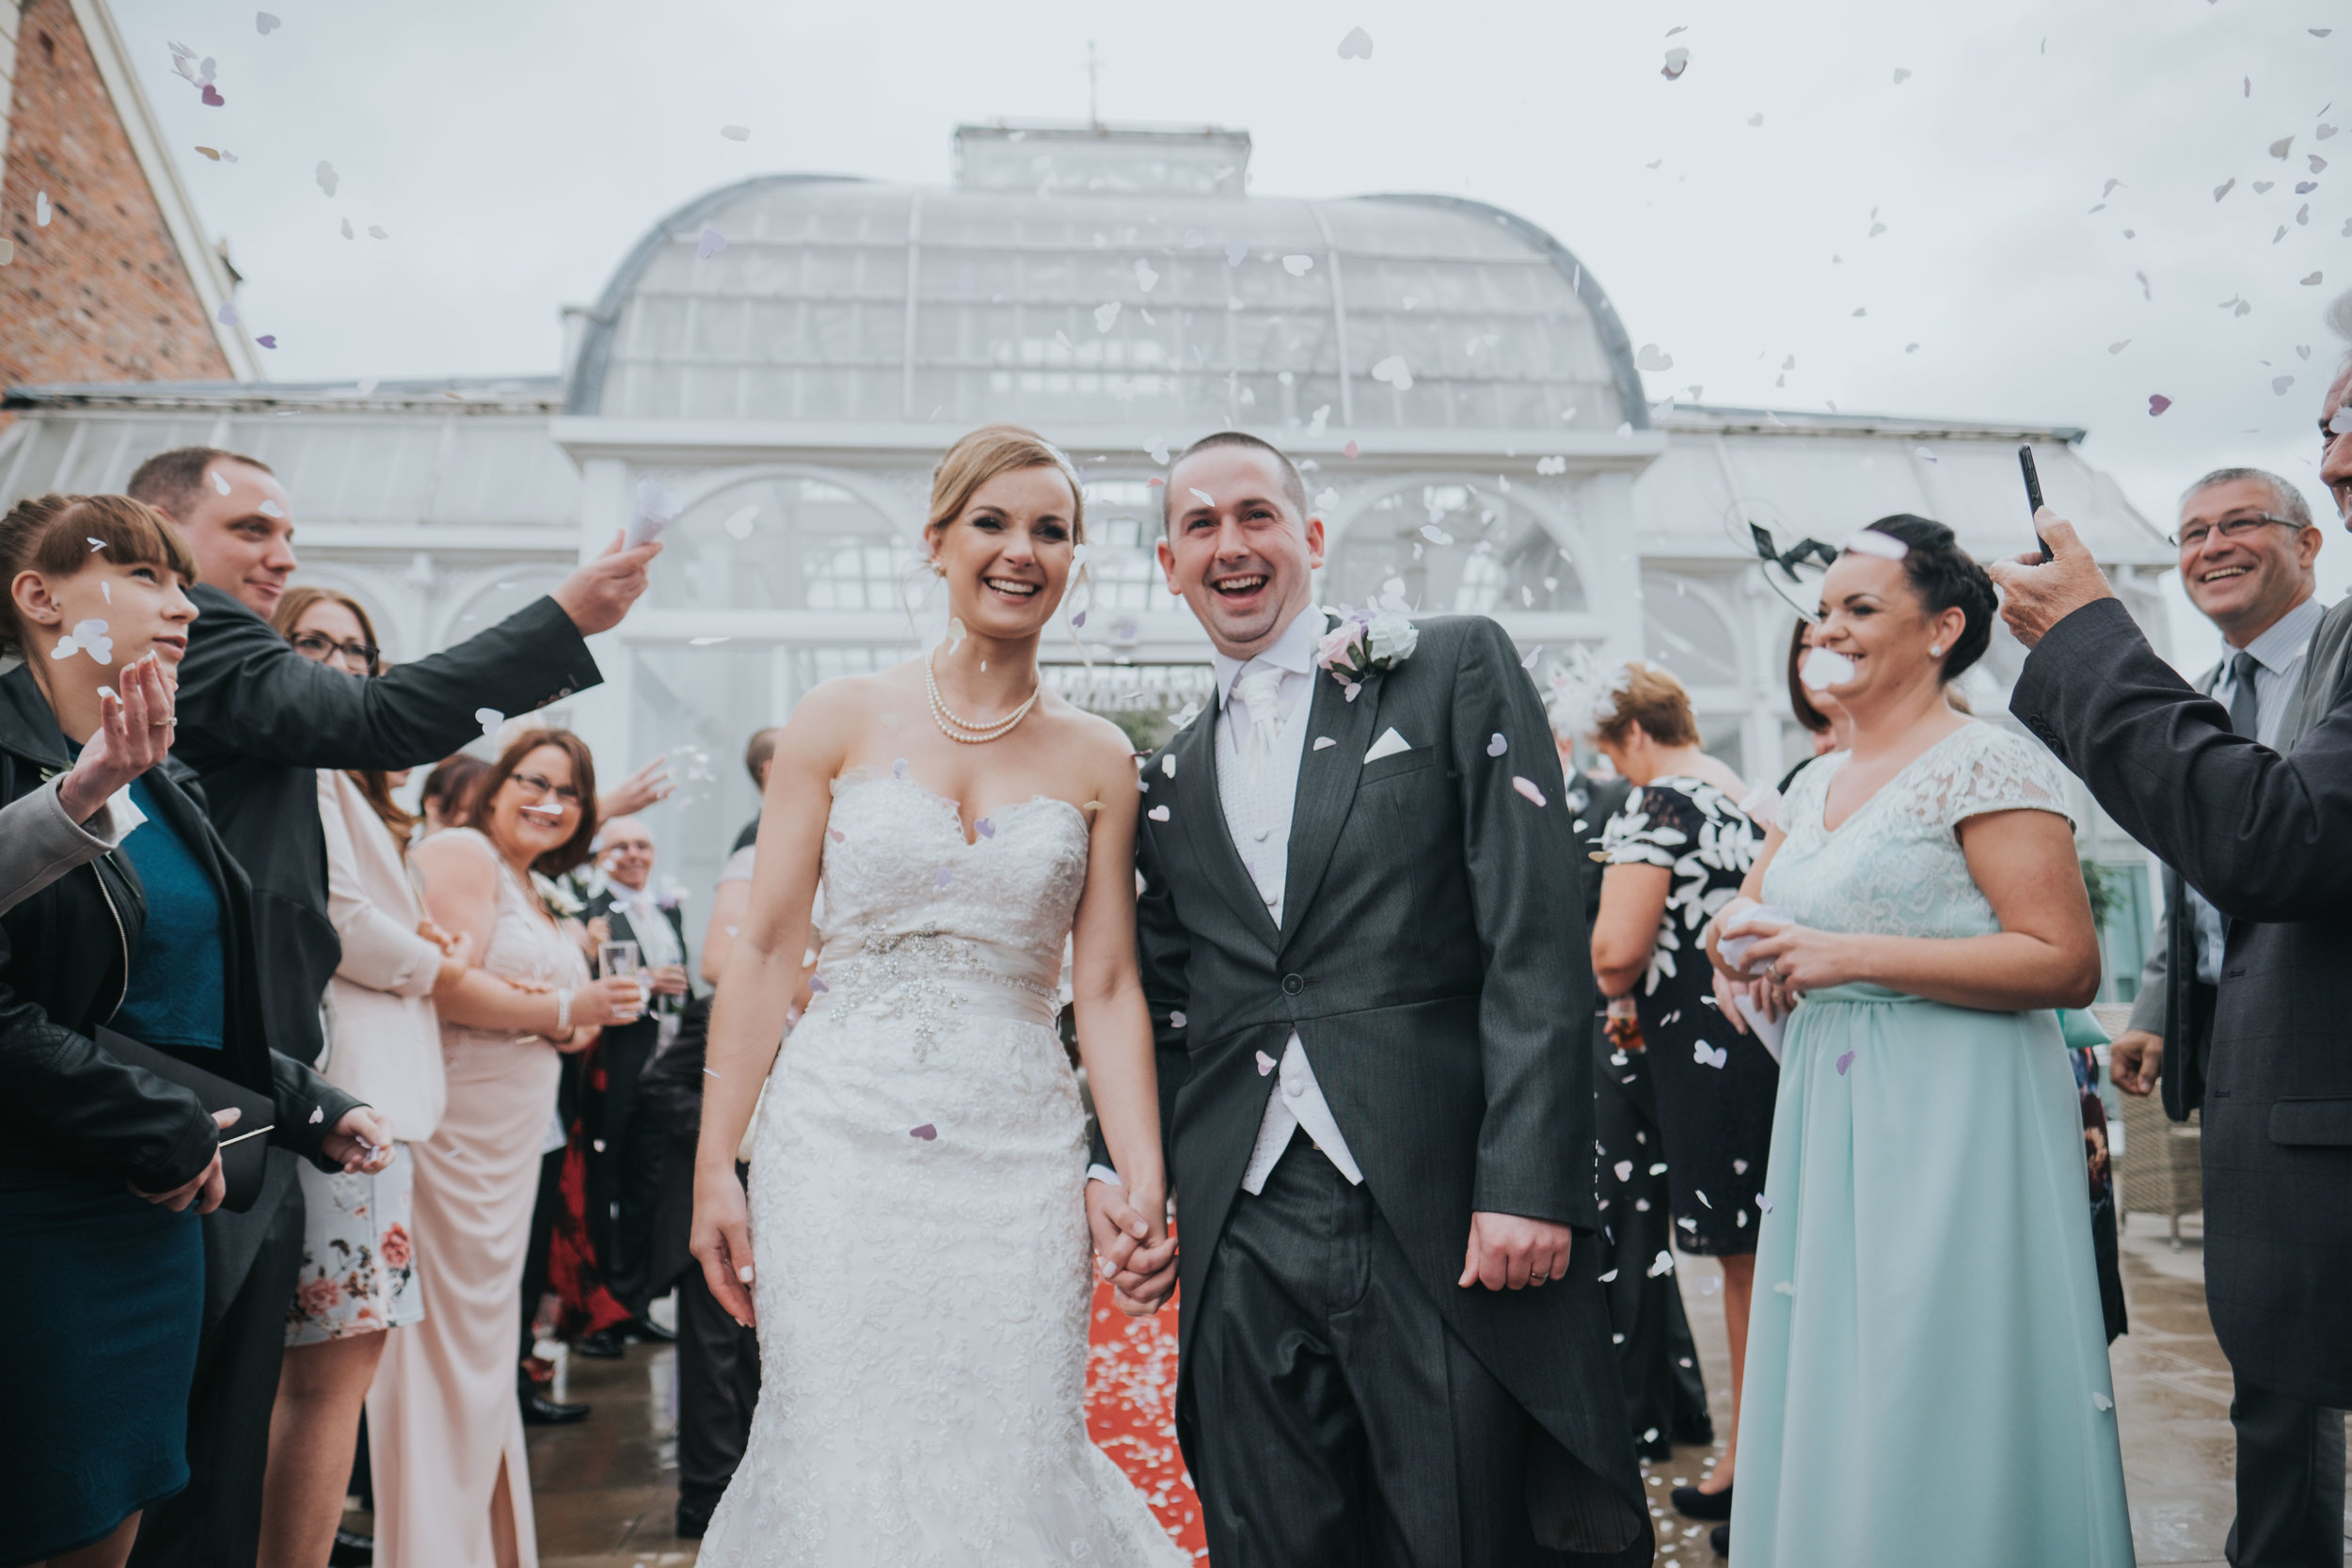 Double tree chester north west wedding photography (43 of 96).jpg